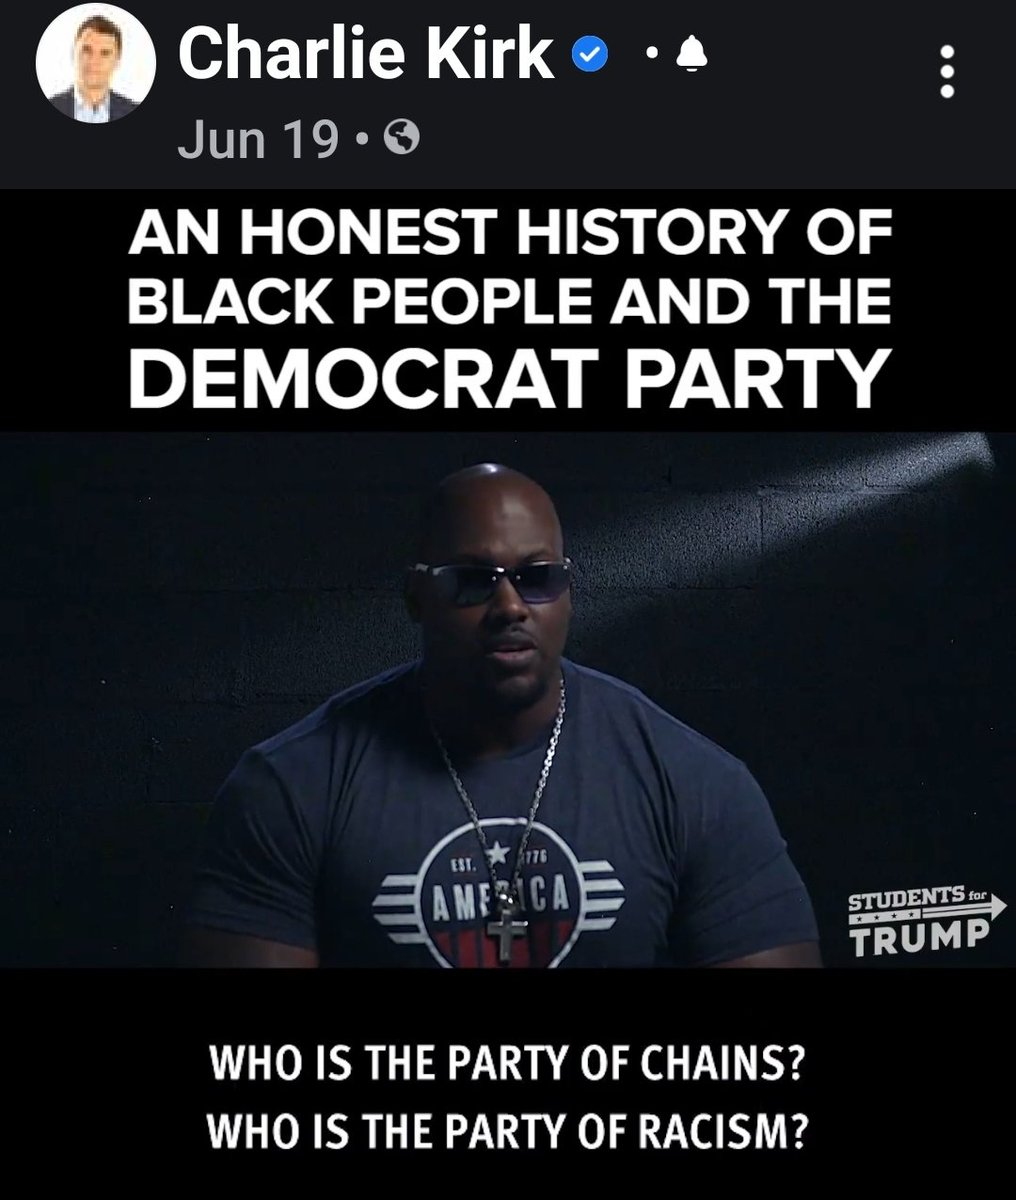 We're all hoping that the #Millennials who are lost nowadays will #WakeUp #ASAP! They are missing the opportunity where they can #EDUCATE themselves and #achievesuccess. @YoungEnt @BlackNews4Real @TallahForTrump @BlackManTrump #youngRepublicans https://www.facebook.com/realCharlieKirk/videos/289466635756833/…pic.twitter.com/tKs2b8kbTi